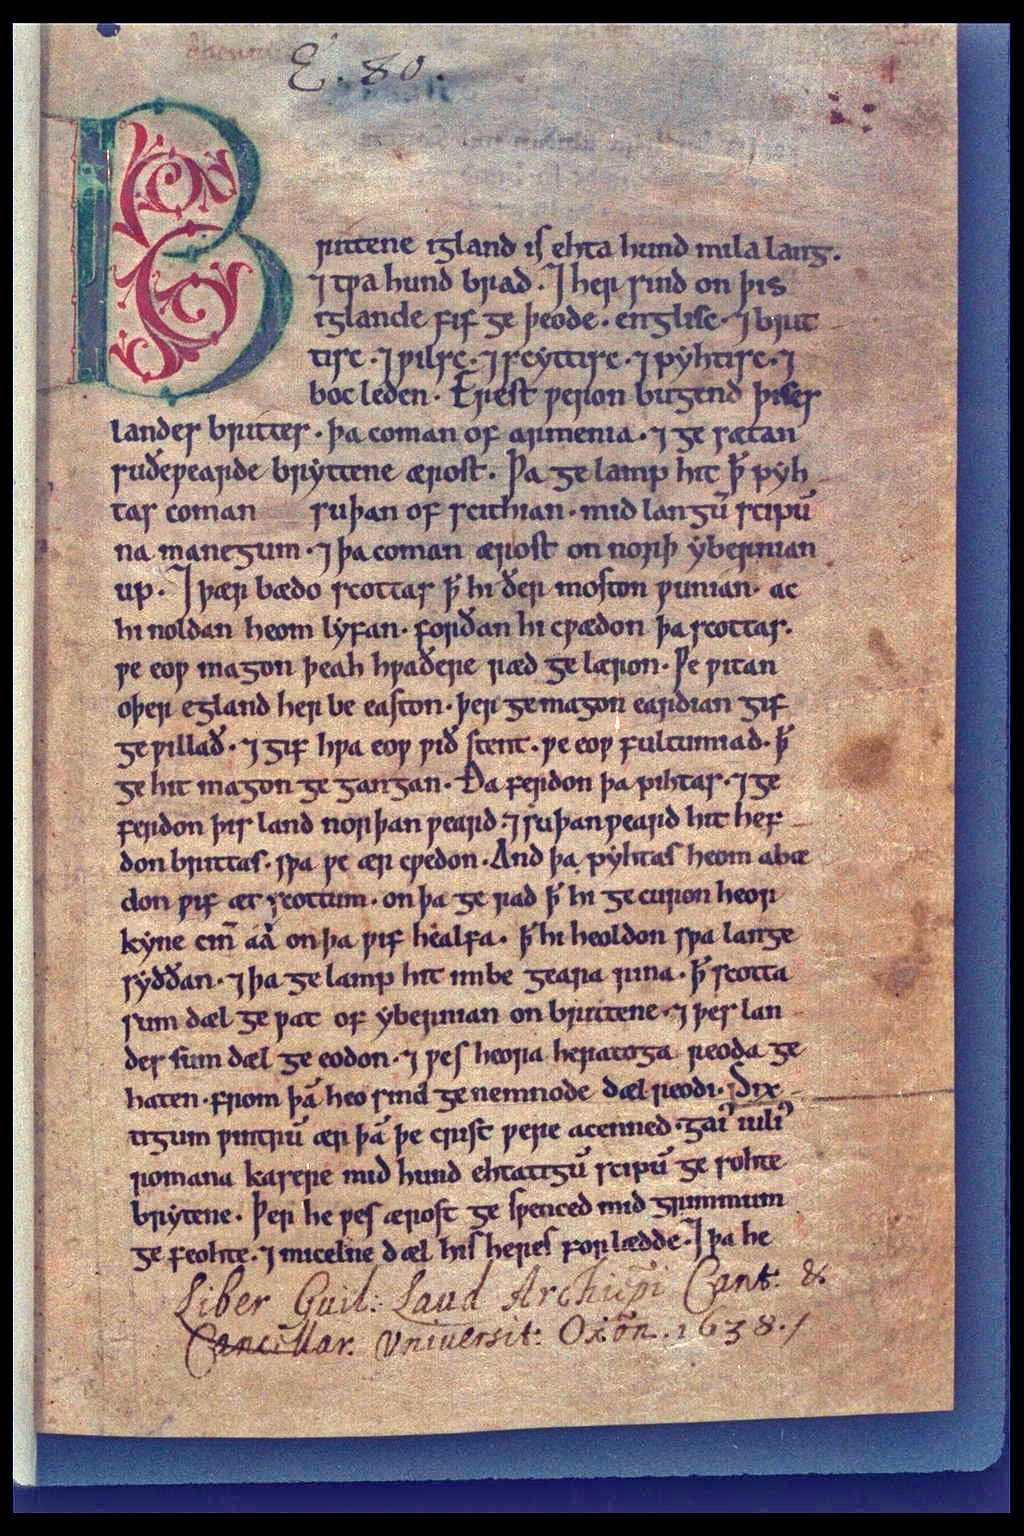 The Peterbrough Chronicle. The Anglo-Saxon Chronicles refer to a collection of old writings and manuscripts kept by monasteries across England. They are written in old English and tell the history of the Anglo-Saxons. The recording started in the 9th century during the reign of Alfred the Great and ...